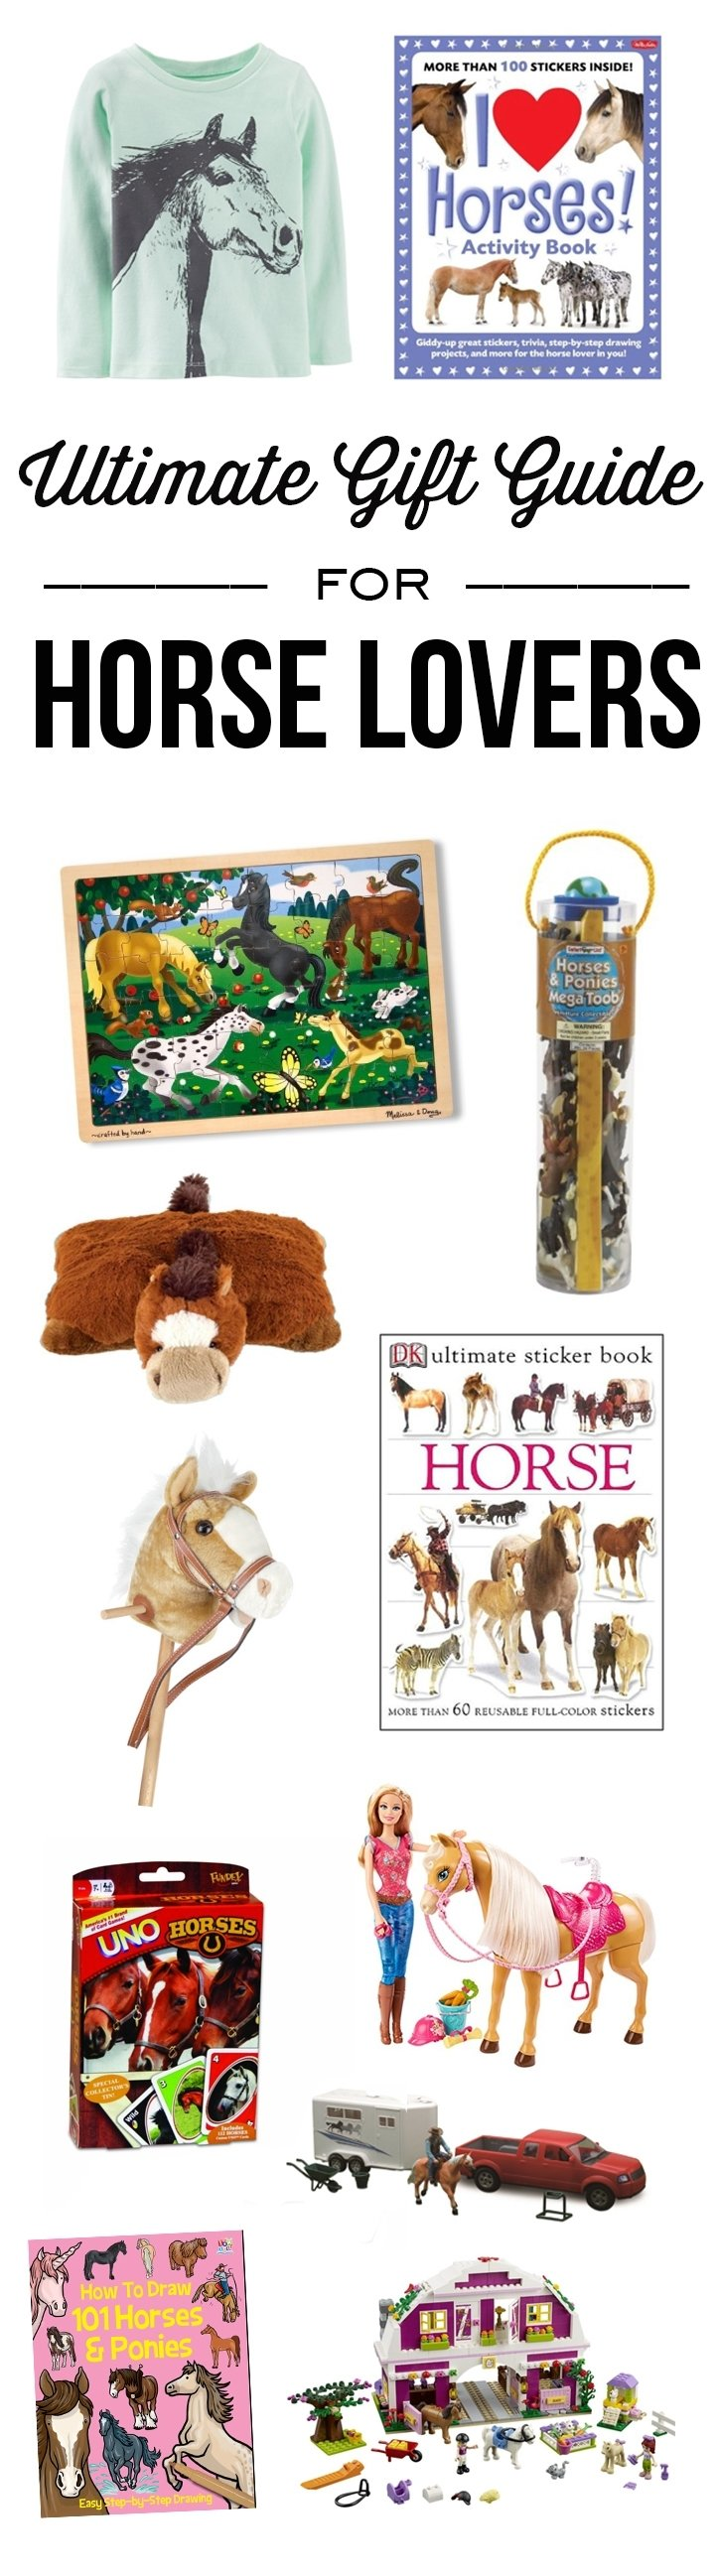 10 Famous Gift Ideas For Horse Lovers the ultimate gift guide for horse lovers